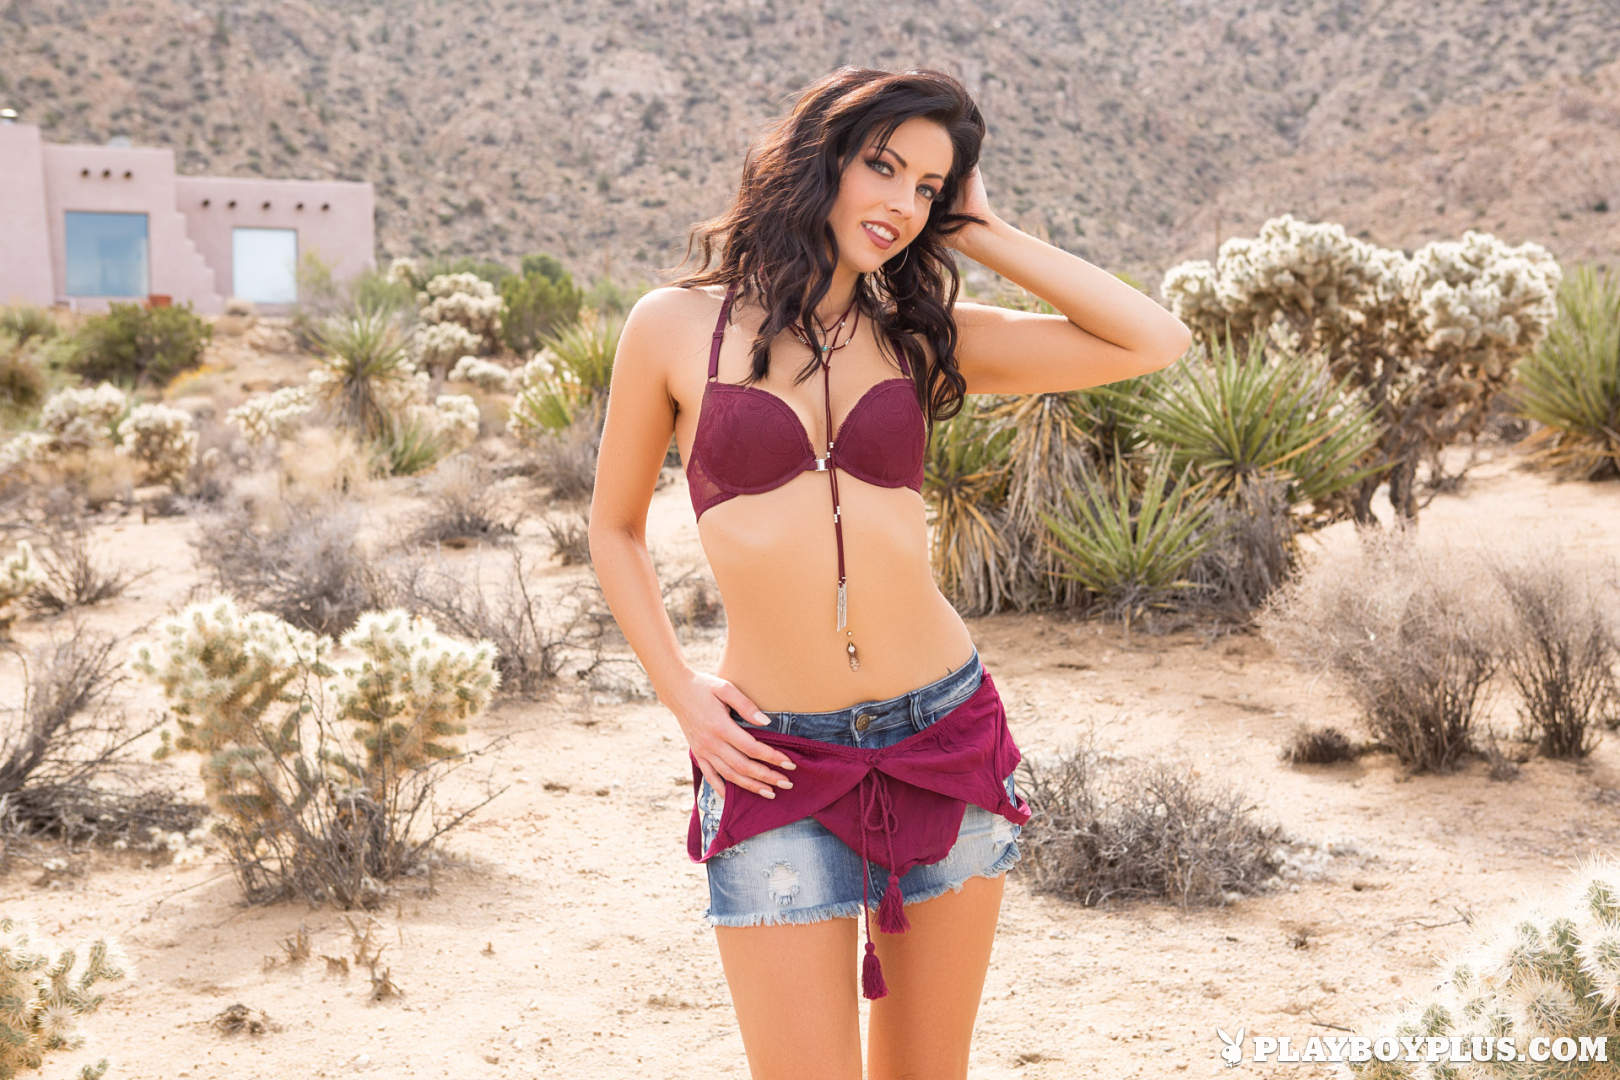 Playboy Cybergirl Darah Kay Nude nude is the desert Playboy Plus!